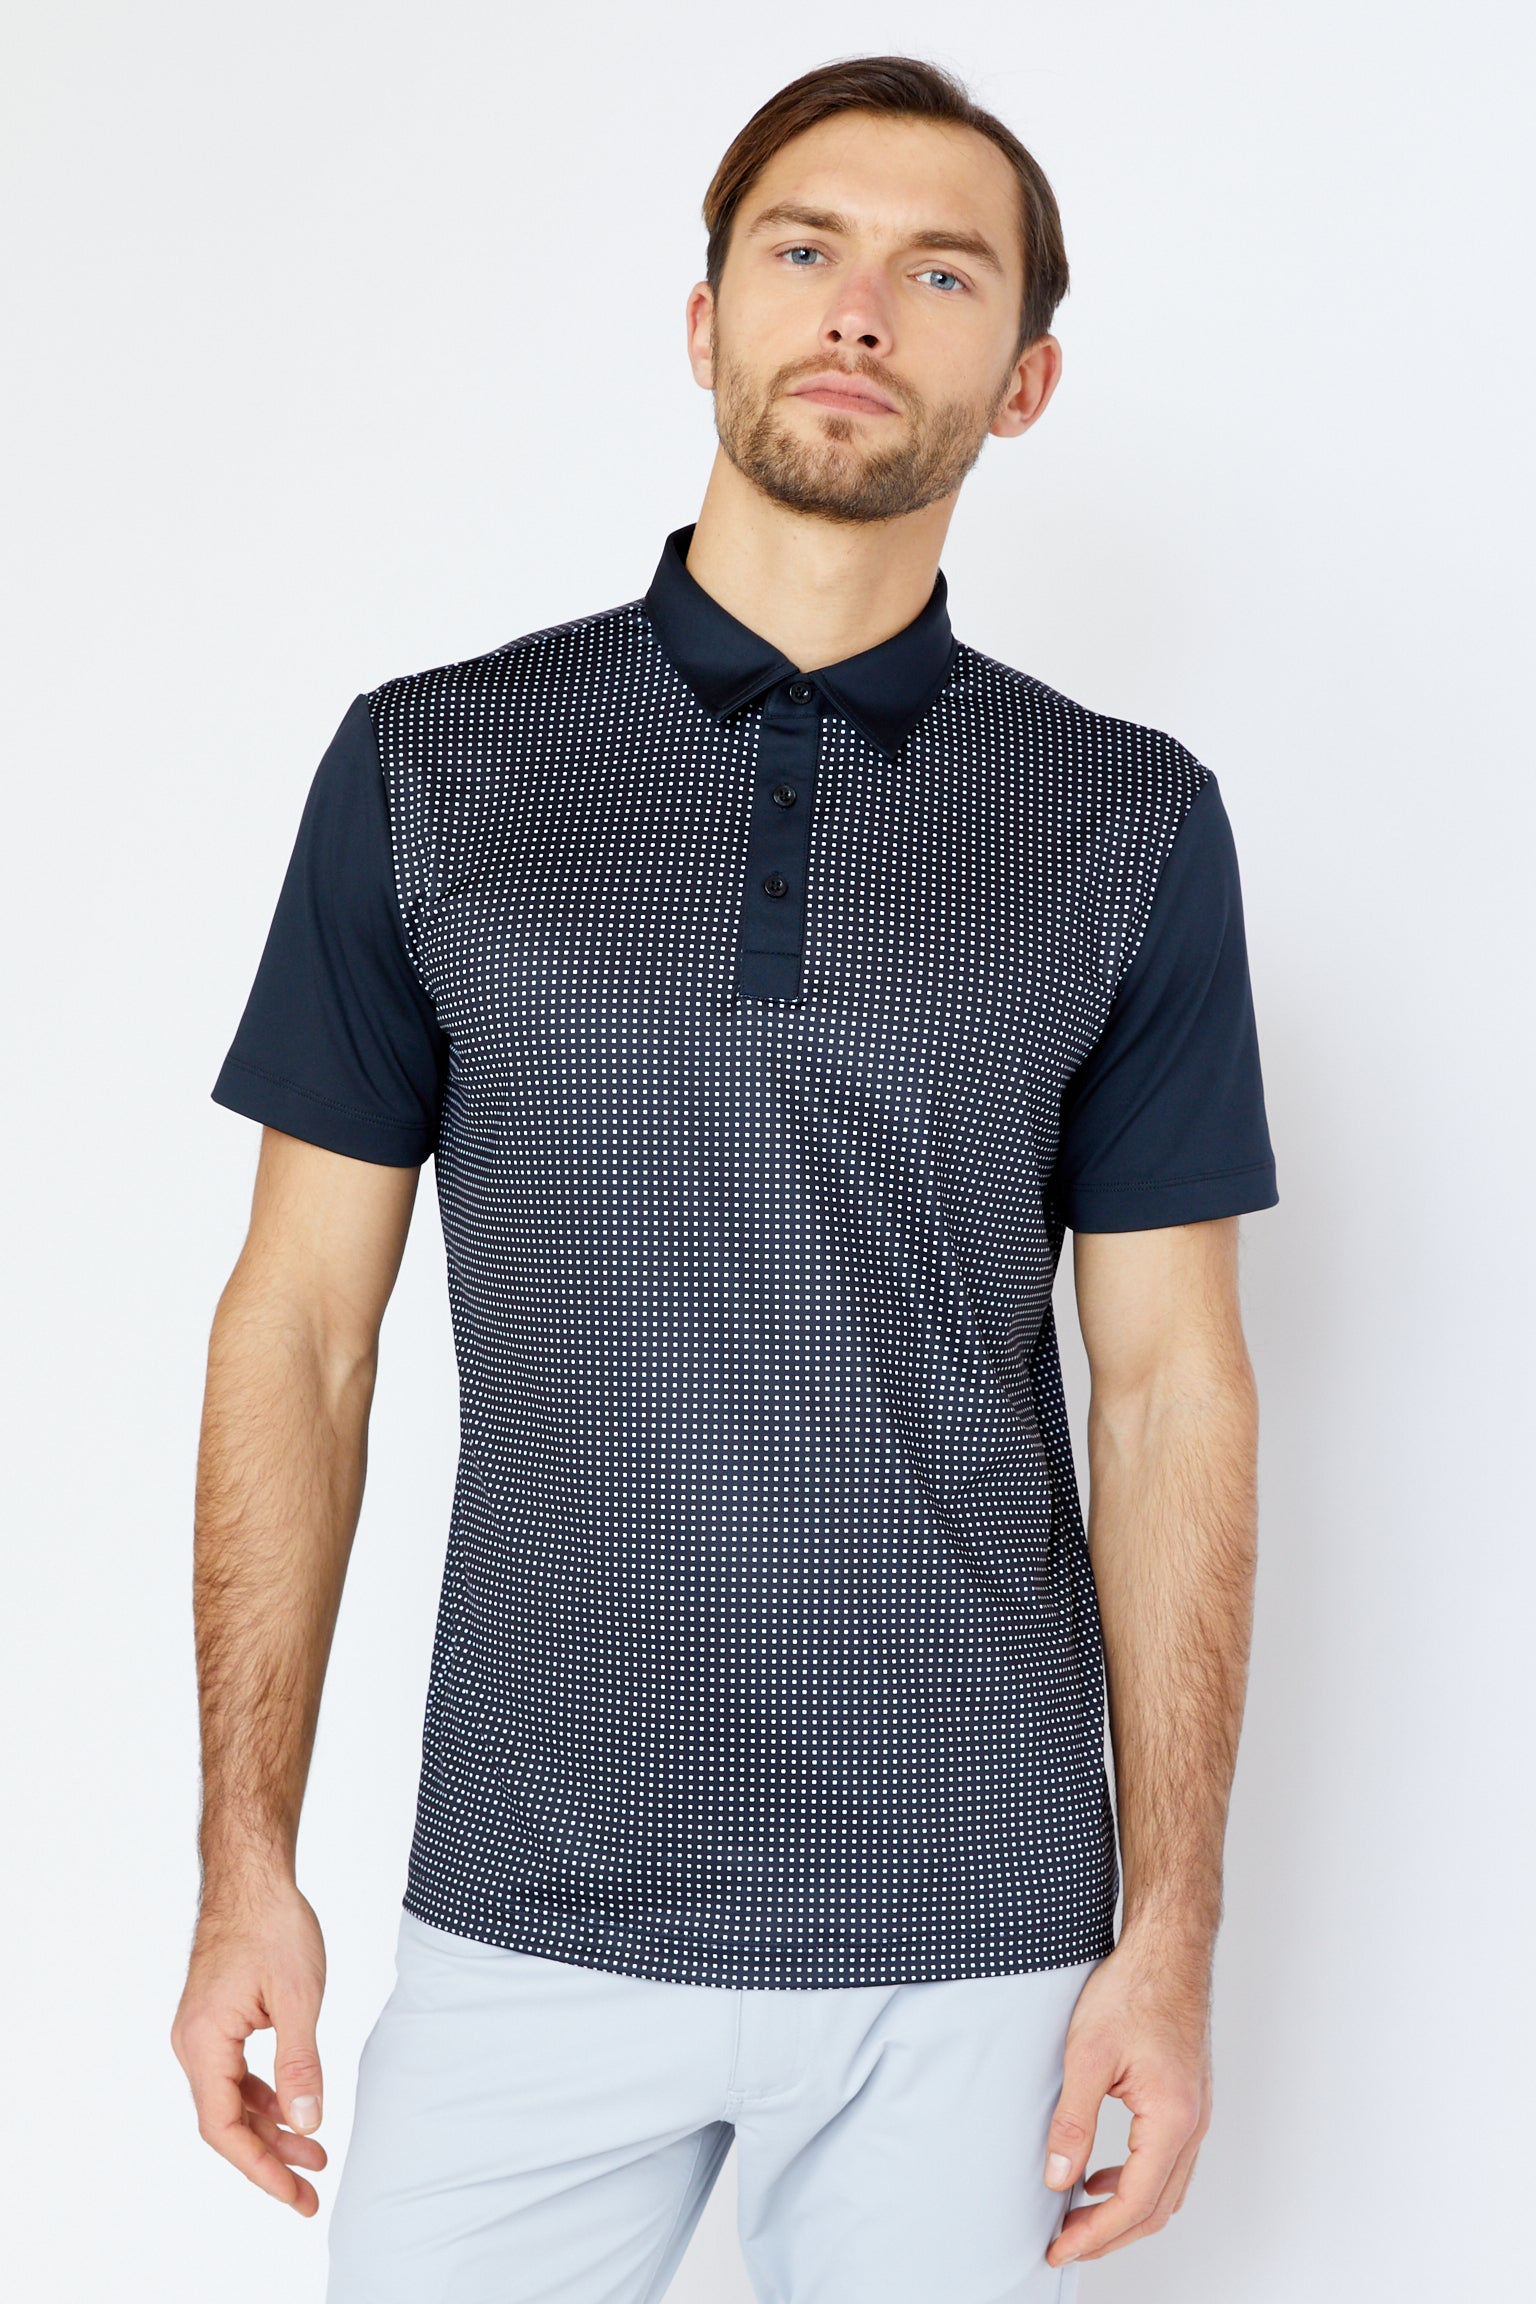 Geary Polo in Black